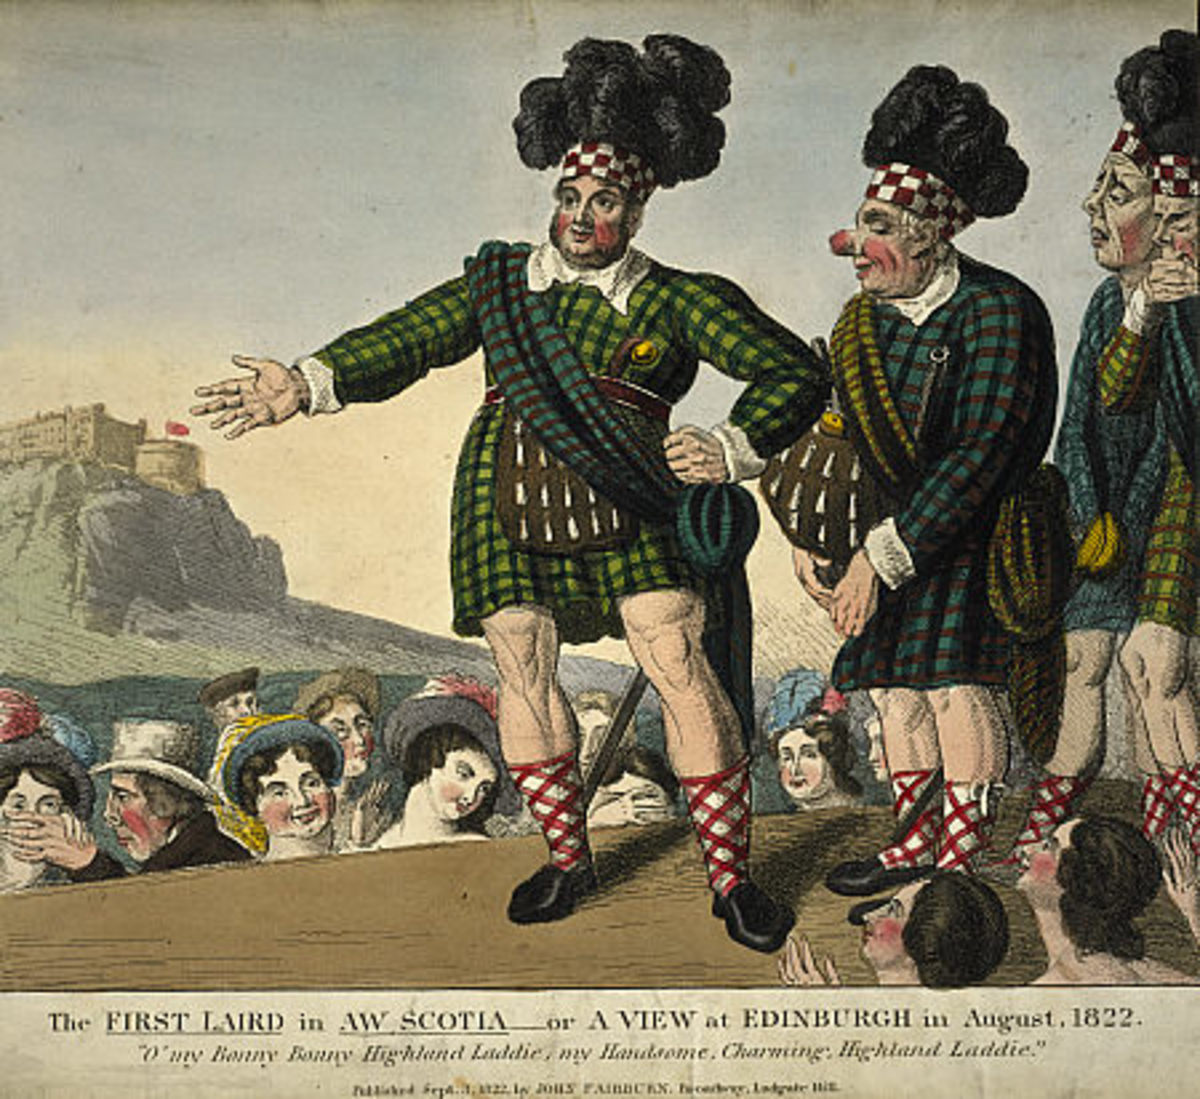 georgie-porgie-pudding-and-pie-the-visit-of-king-george-iv-to-edinburgh-in-1822